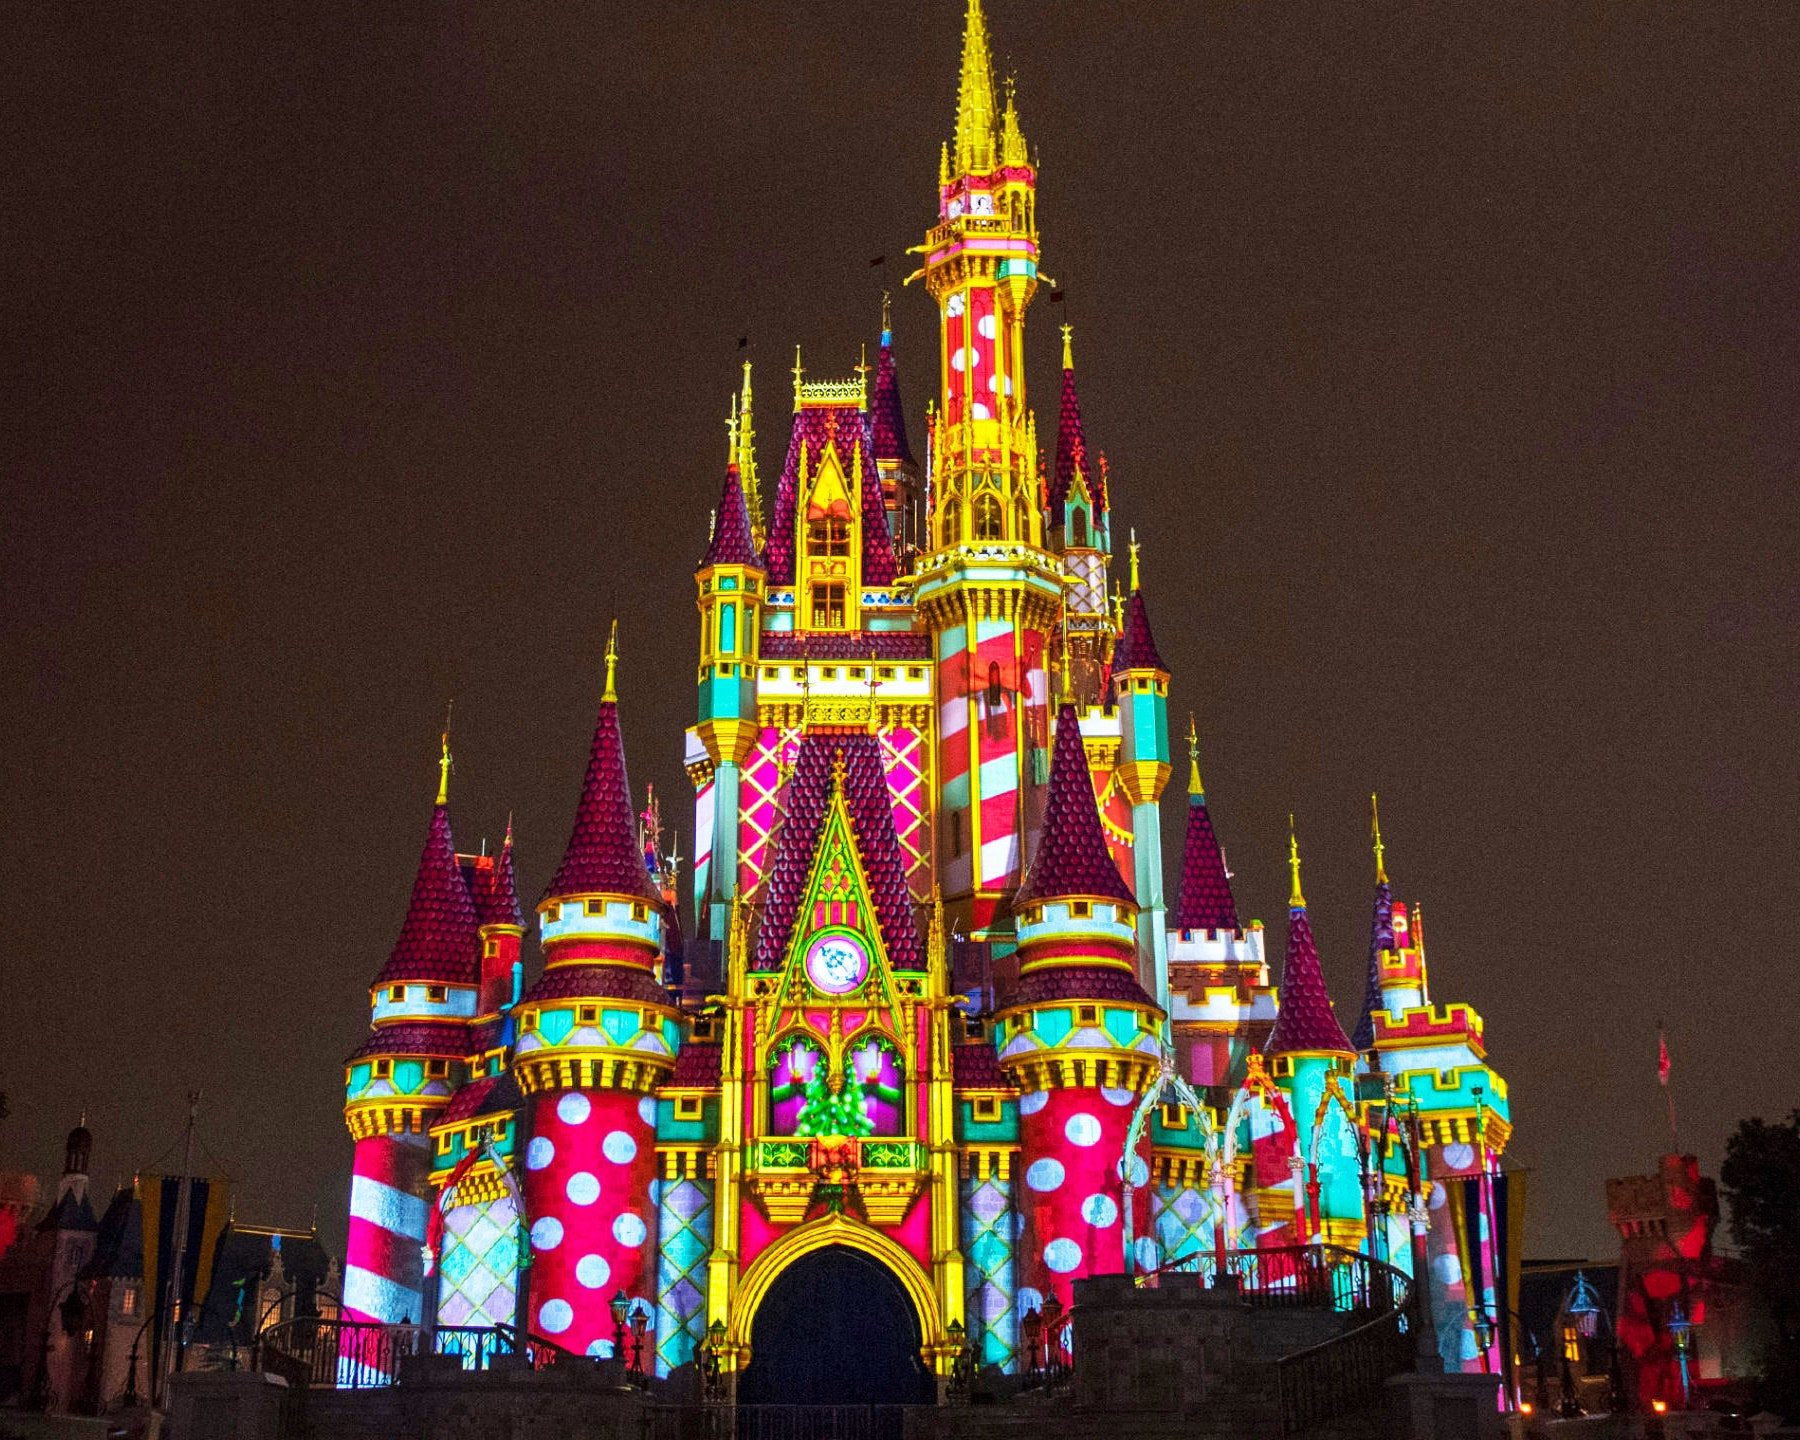 WALT DISNEY WORLD® FLORIDA RESIDENT – DISCOVER DISNEY – EXCLUSIVE FLORIDA RESIDENT TICKETS – 2-4 DAY OPTIONS TO DISCOVER DISNEY